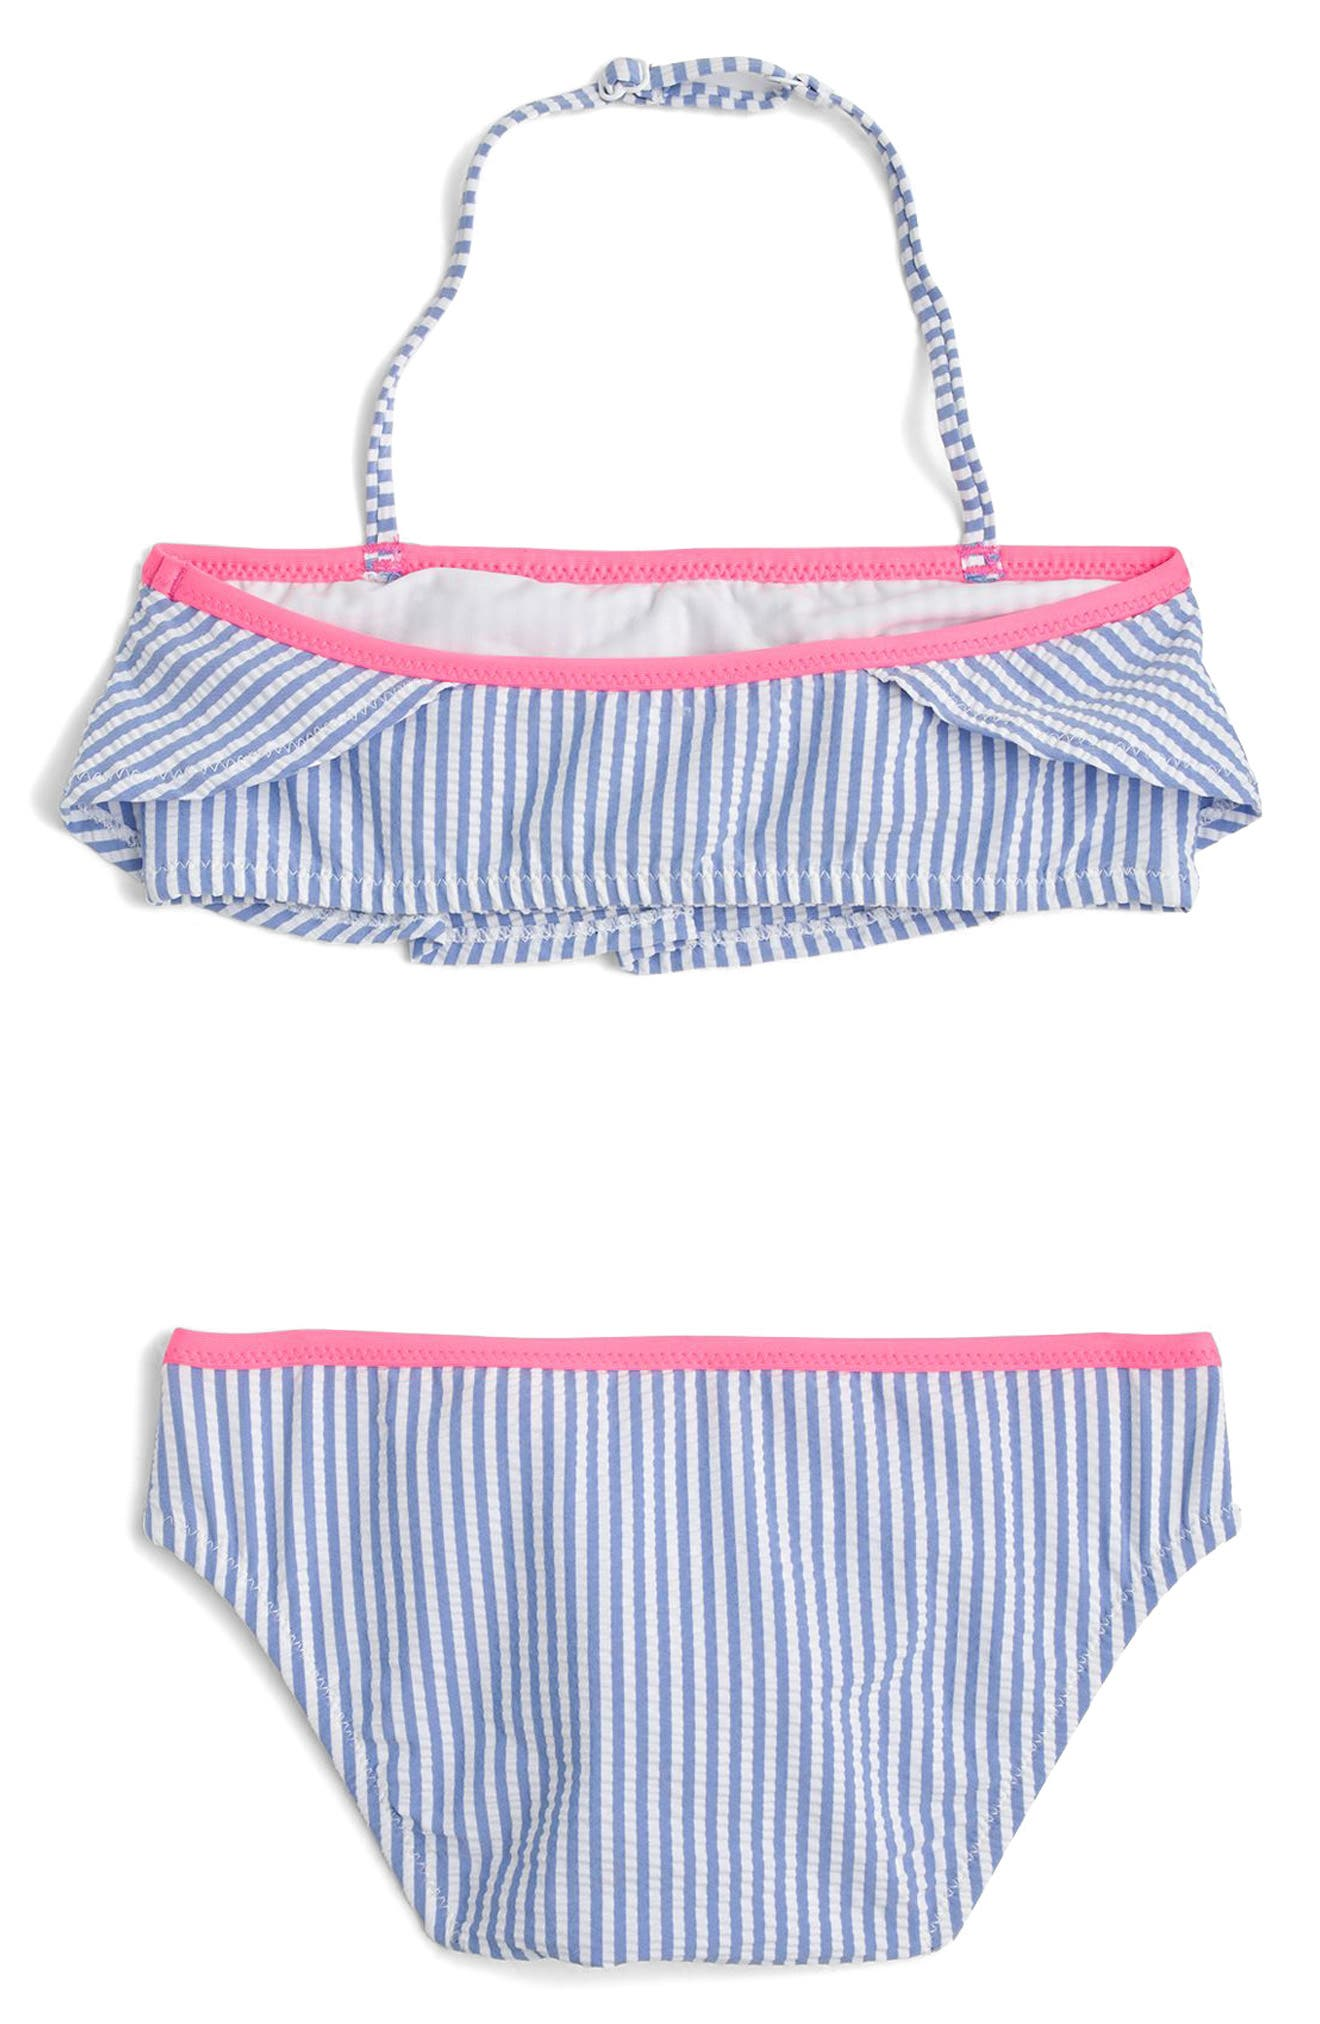 Ruffled Seersucker Two-Piece Bikini Swimsuit,                             Alternate thumbnail 2, color,                             400